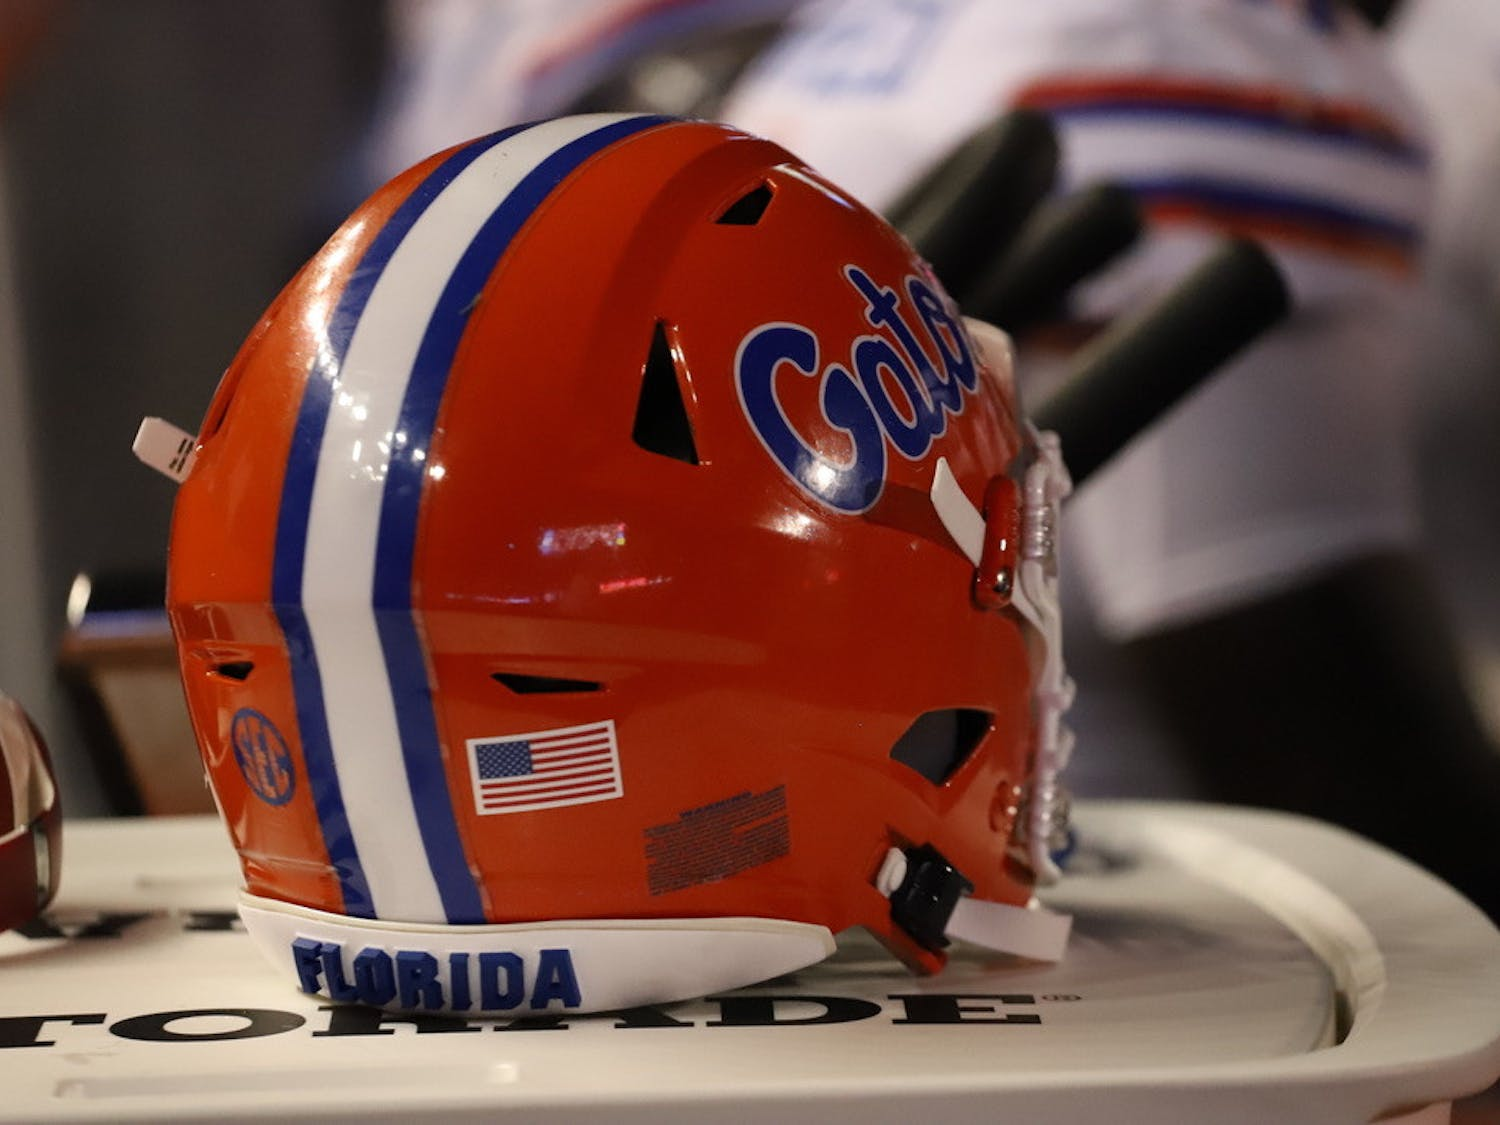 A Florida football helmet, pictured during a game against Florida Atlantic on Sept. 4, 2021.